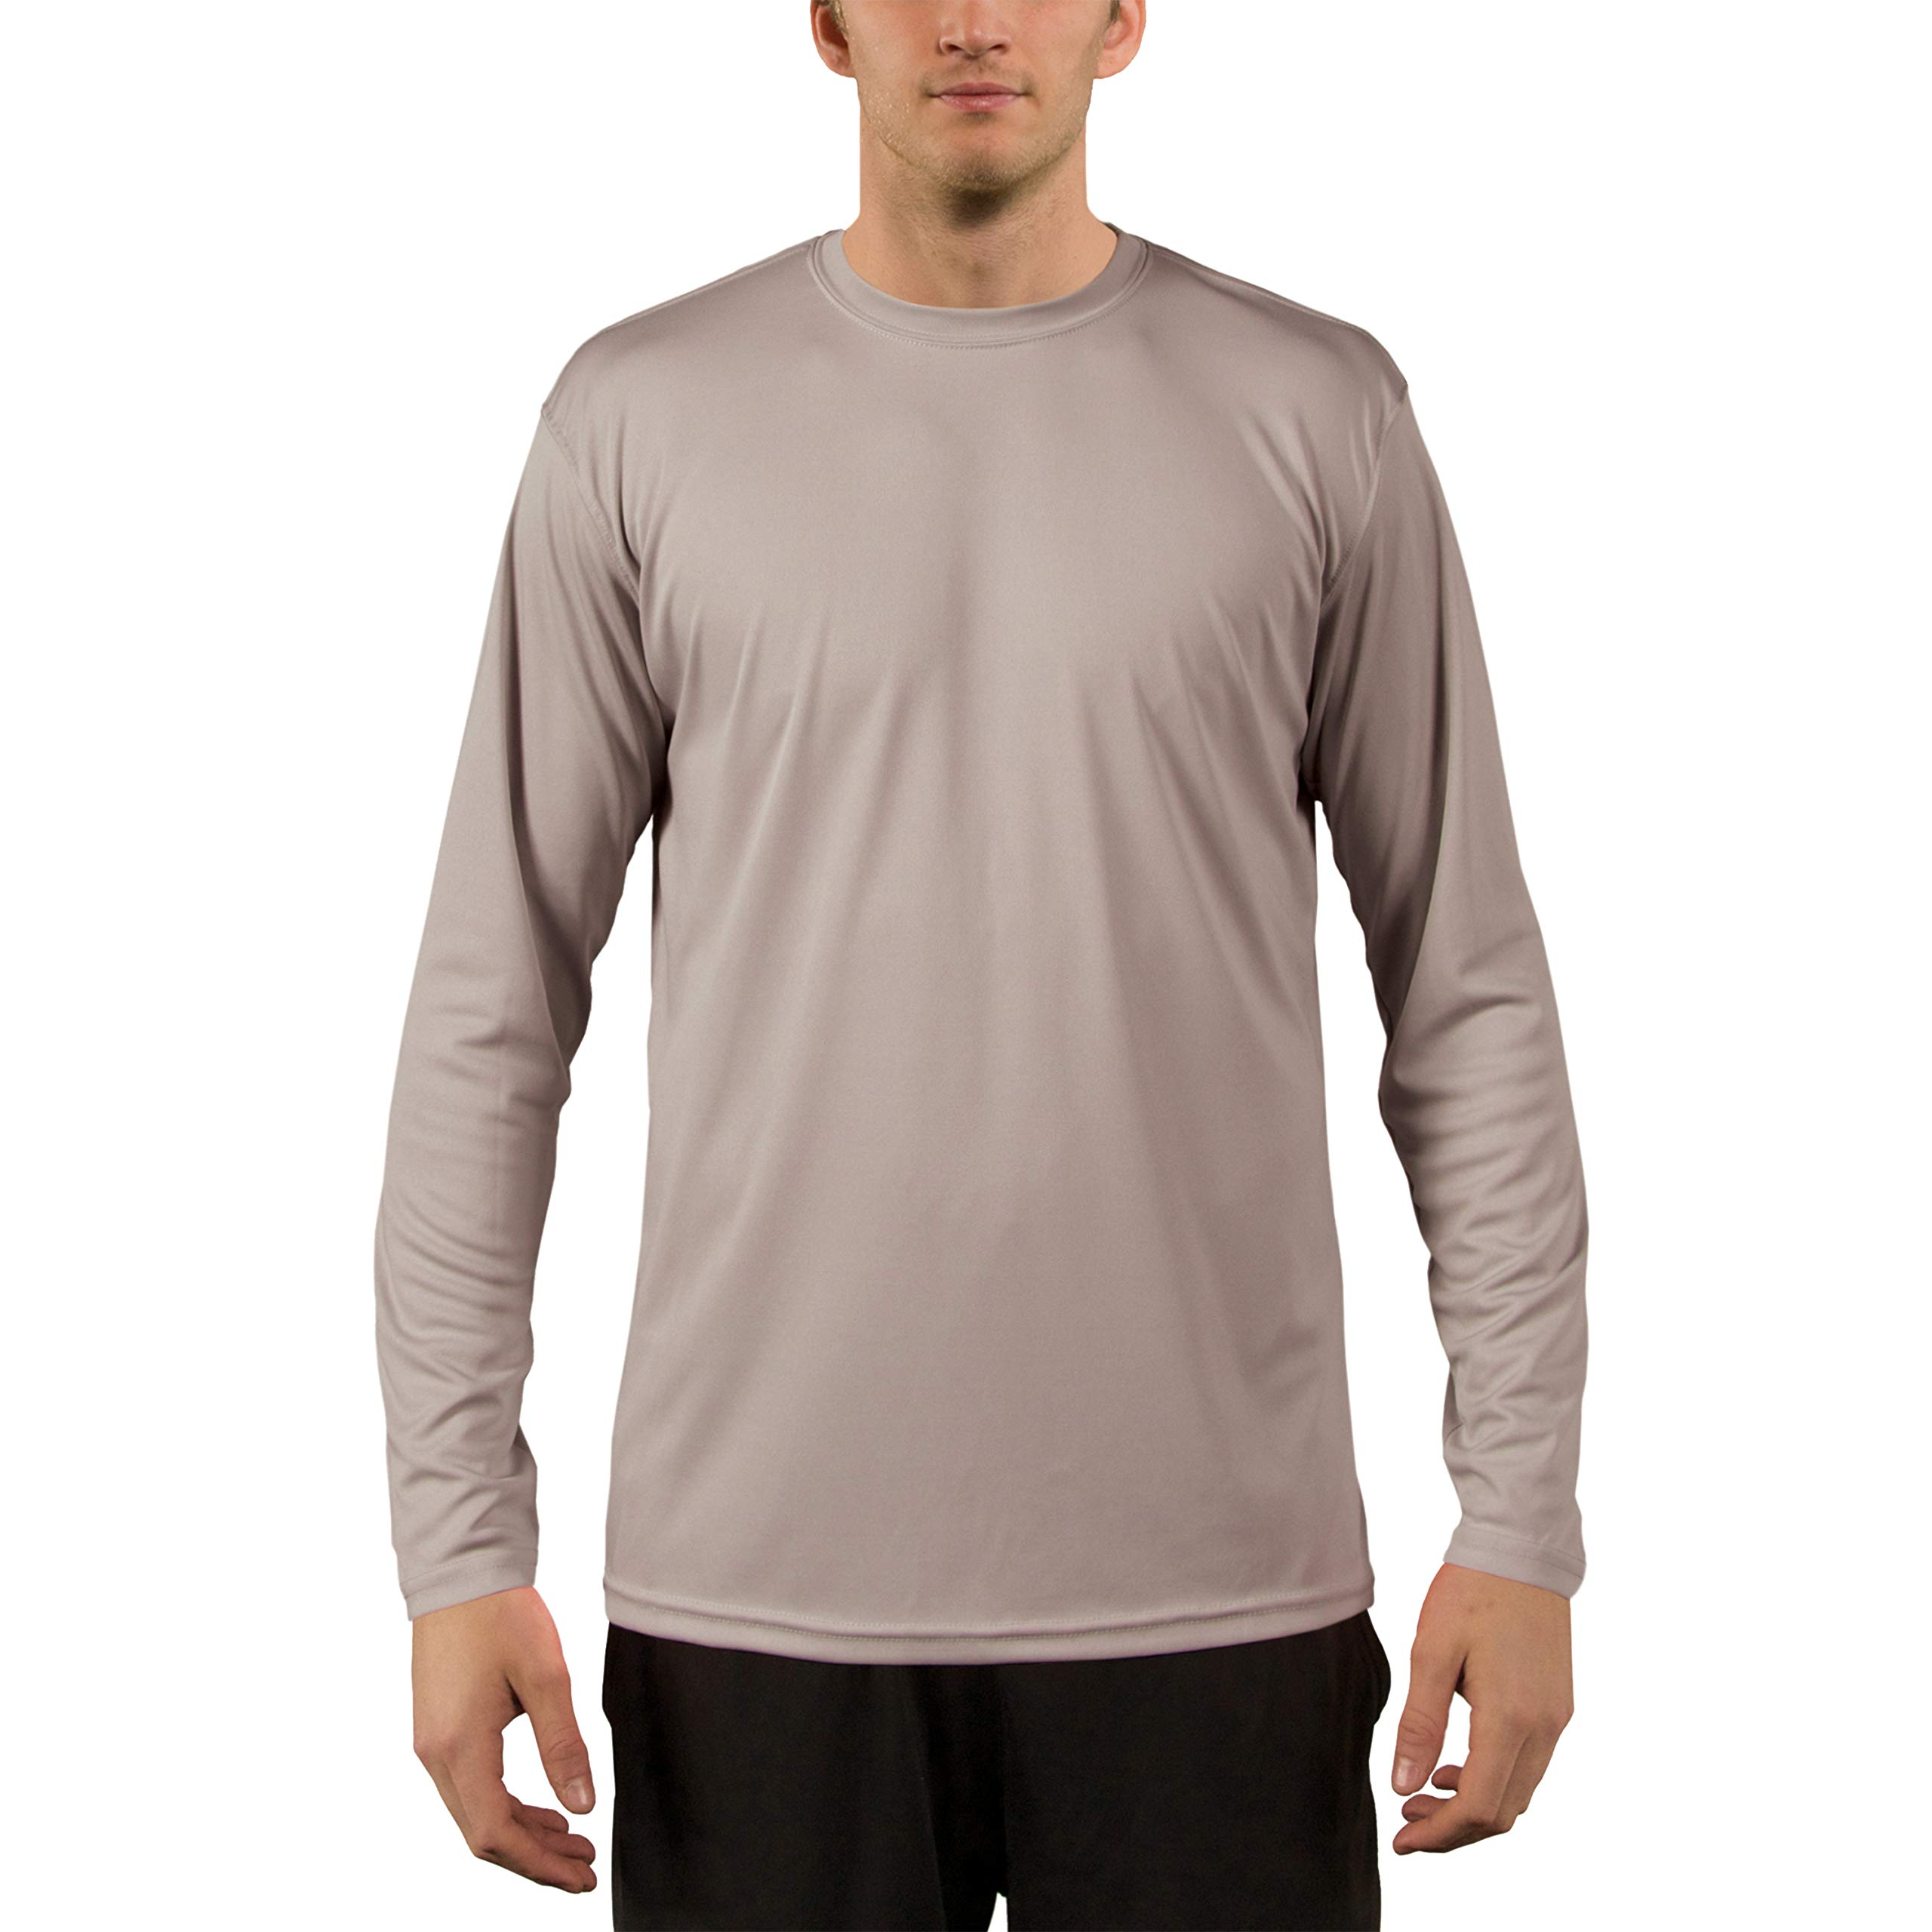 15bdebbee62 Mens Athletic Wear Like Lululemon « Alzheimer's Network of Oregon